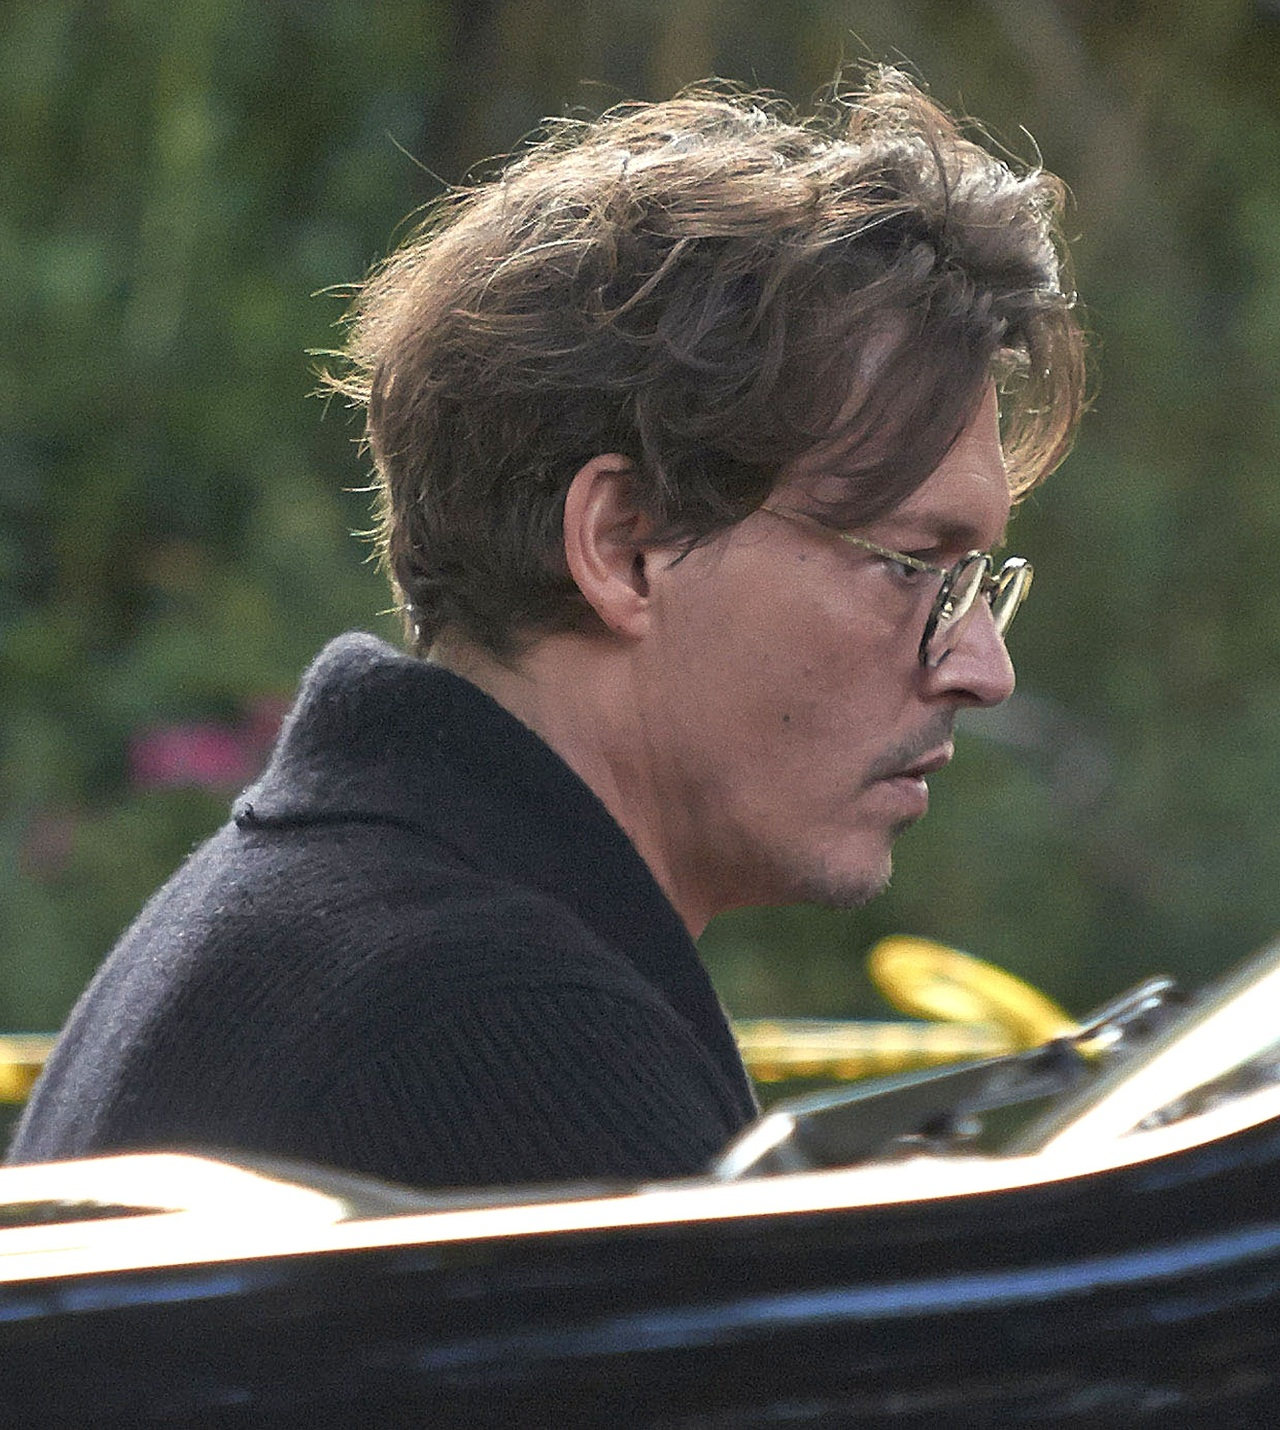 Johnny-on-the-set-of-Transcendence-Day-2-johnny-depp-34379388-1280-1430.jpg